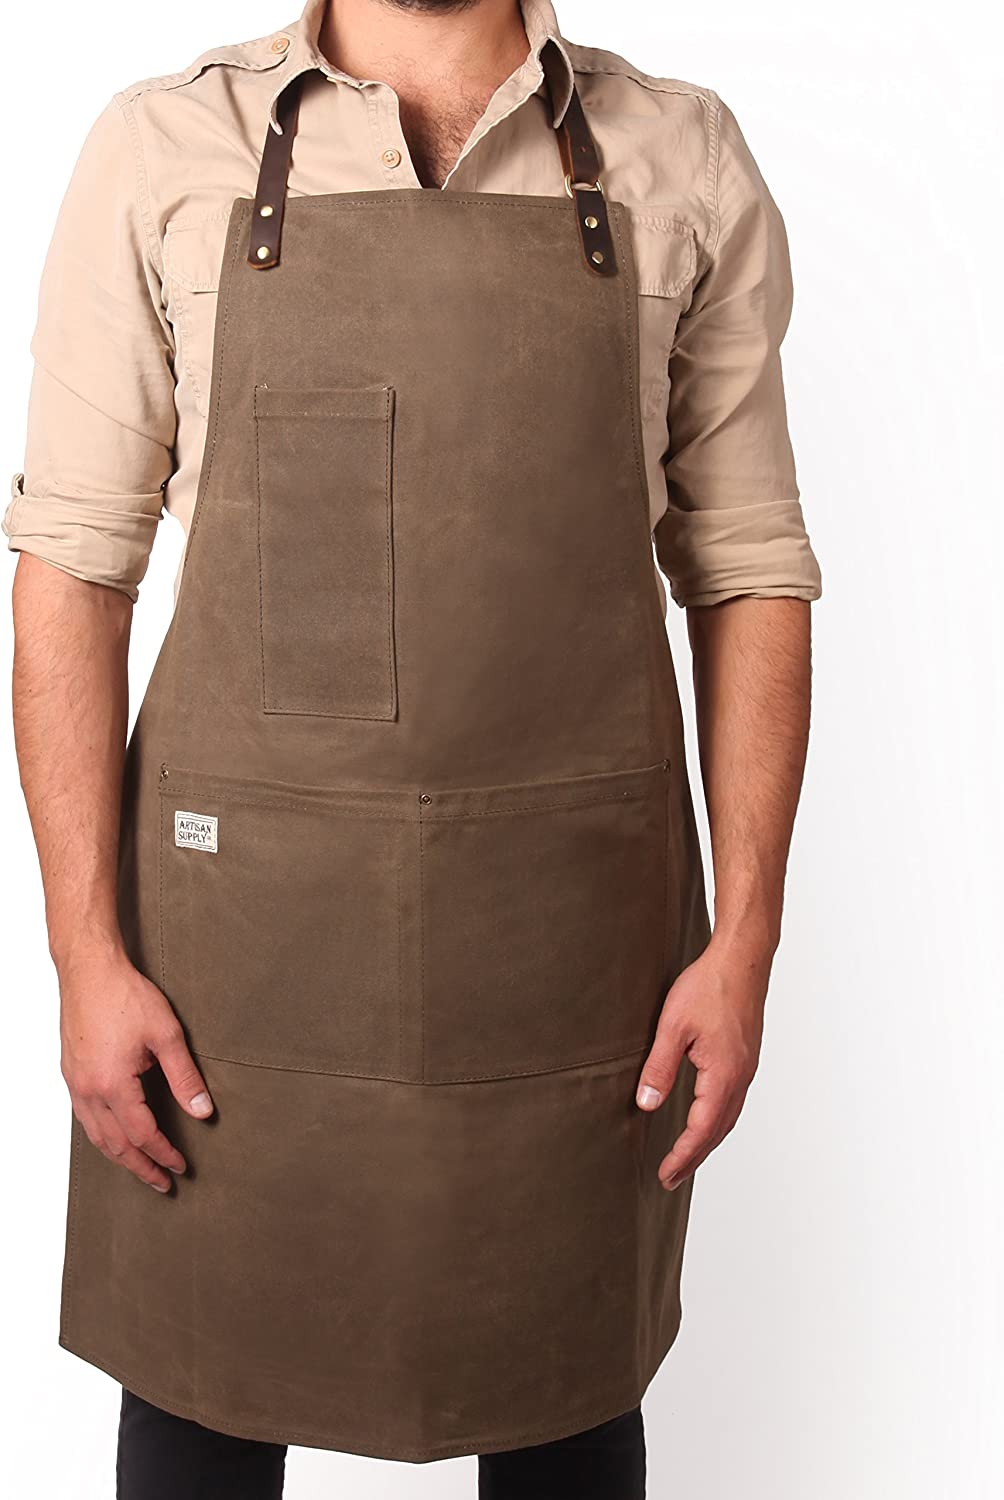 Brown Duck Canvas Men's Apron with Leather Straps Aprons Home ...